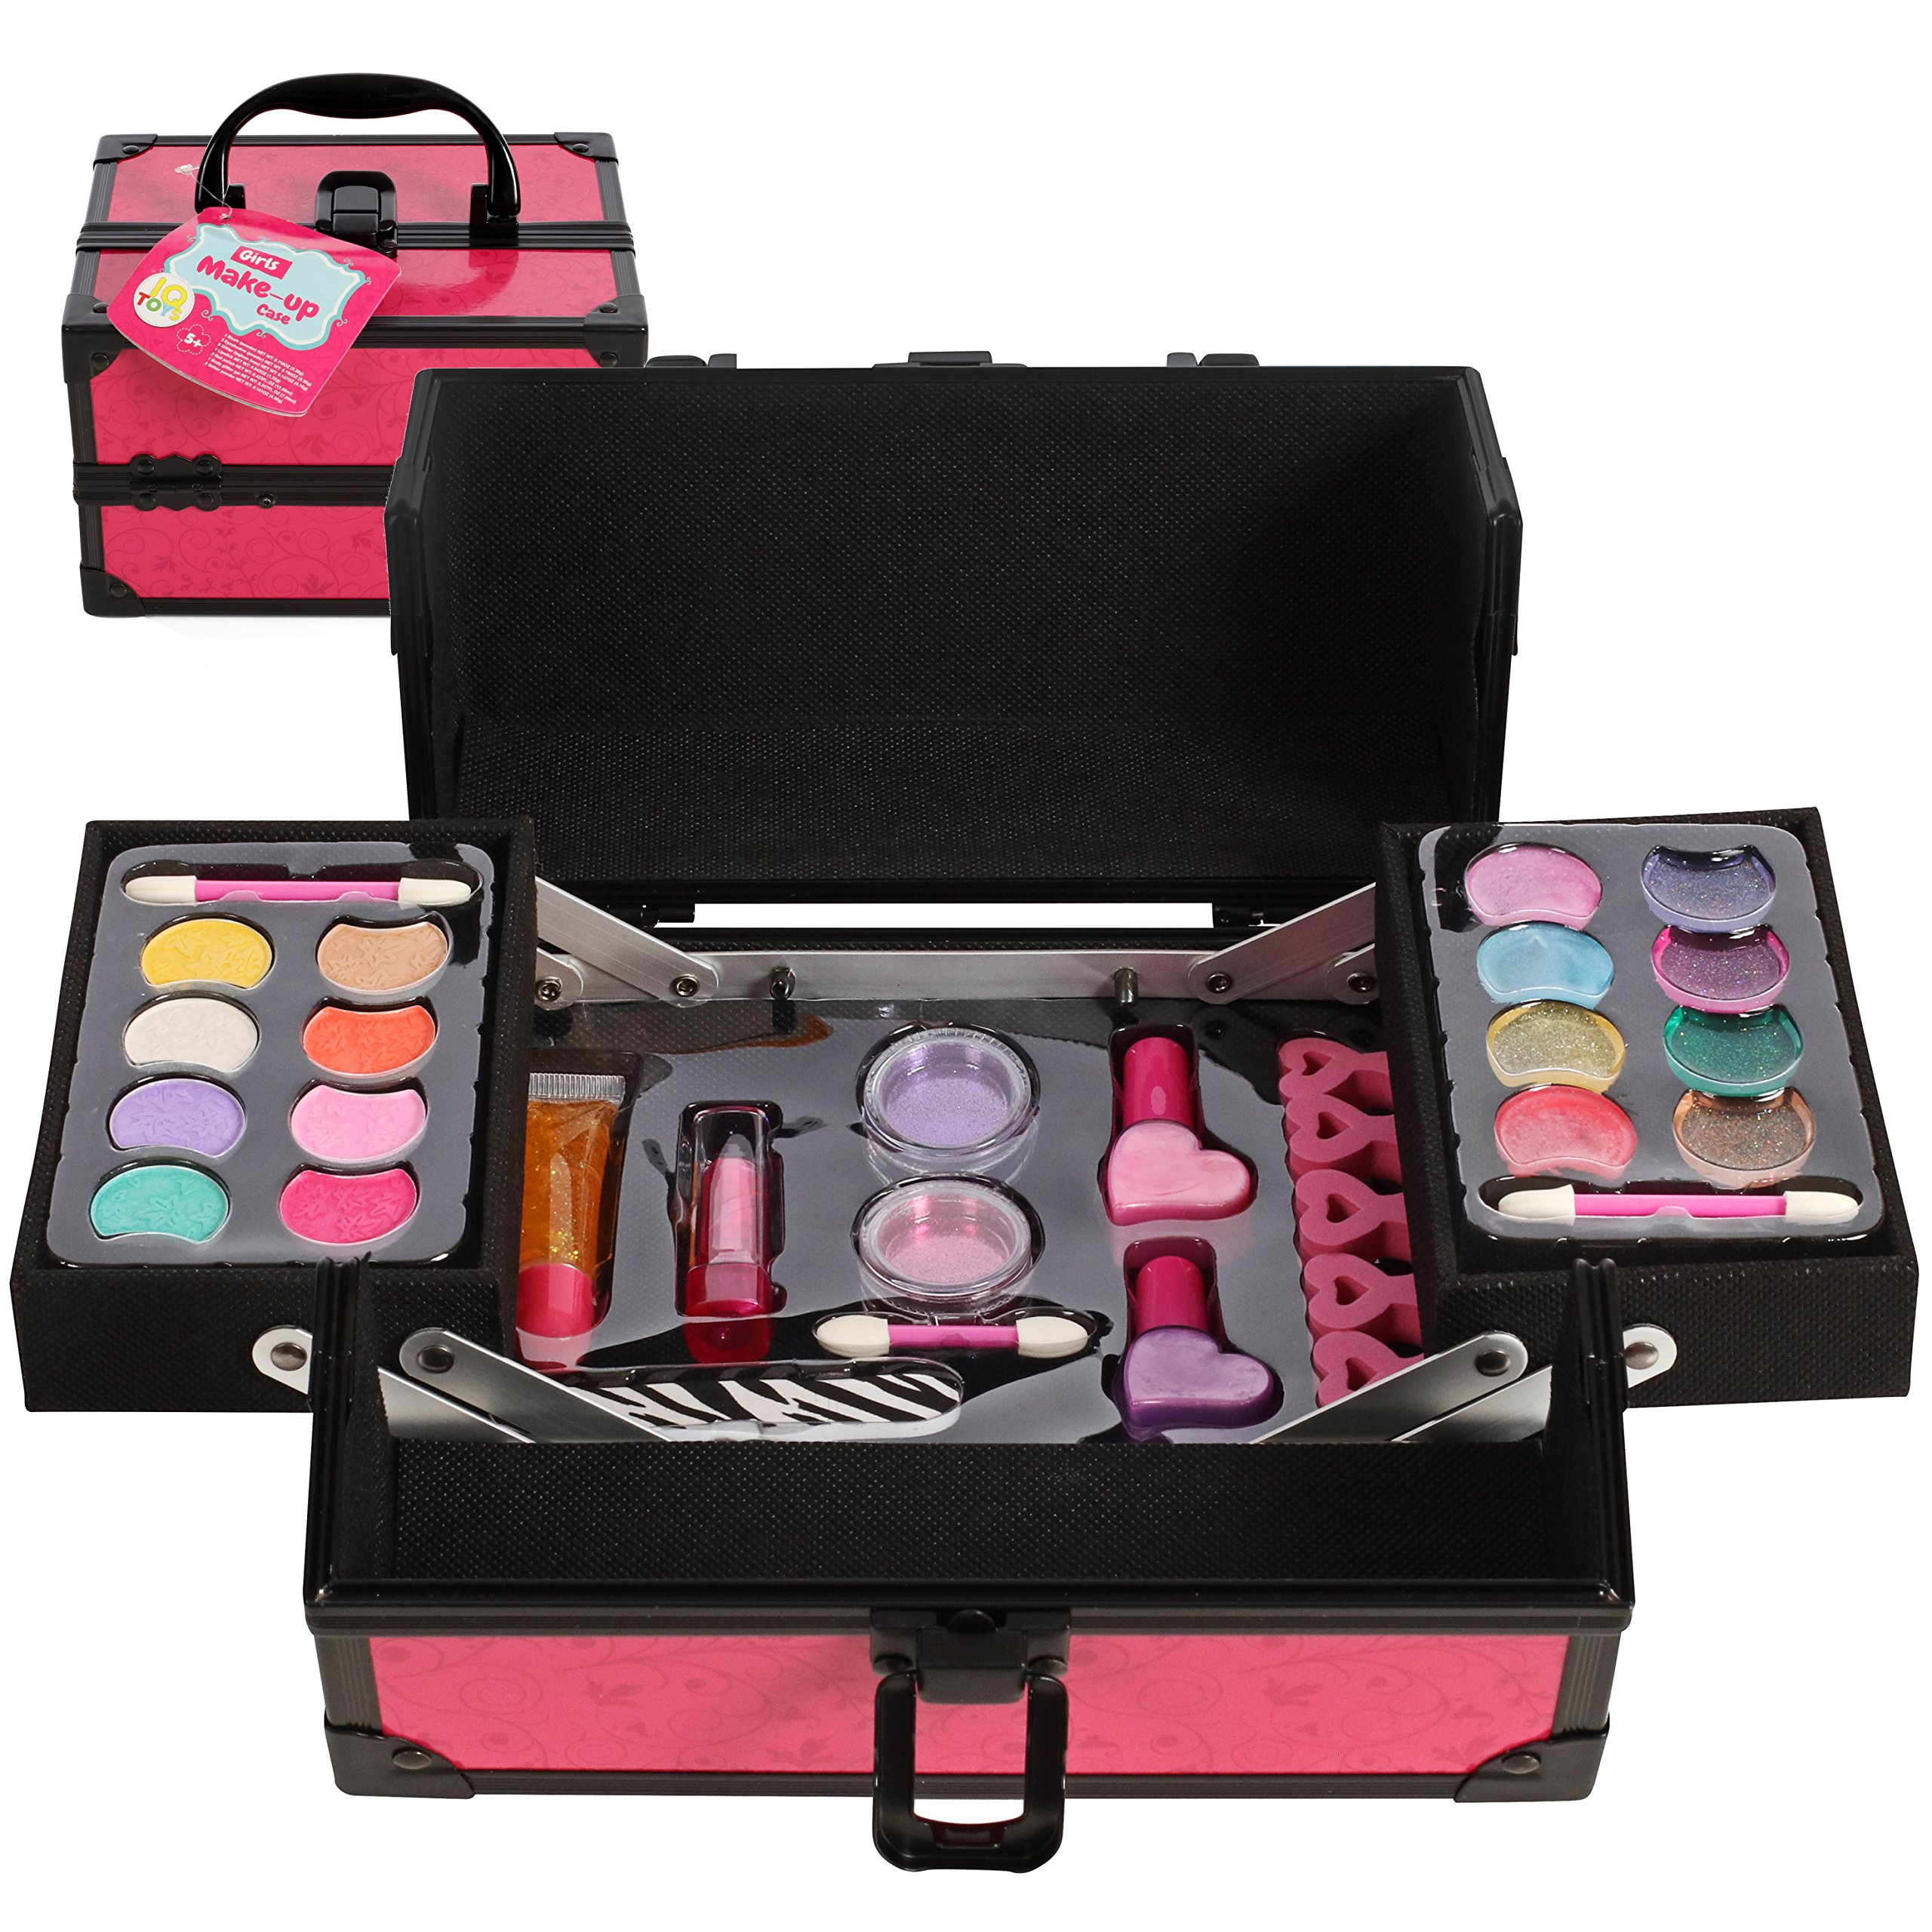 IQ Toys Girls Makeup Set, with Two Tiered Long Lasting Case by IQ Toys